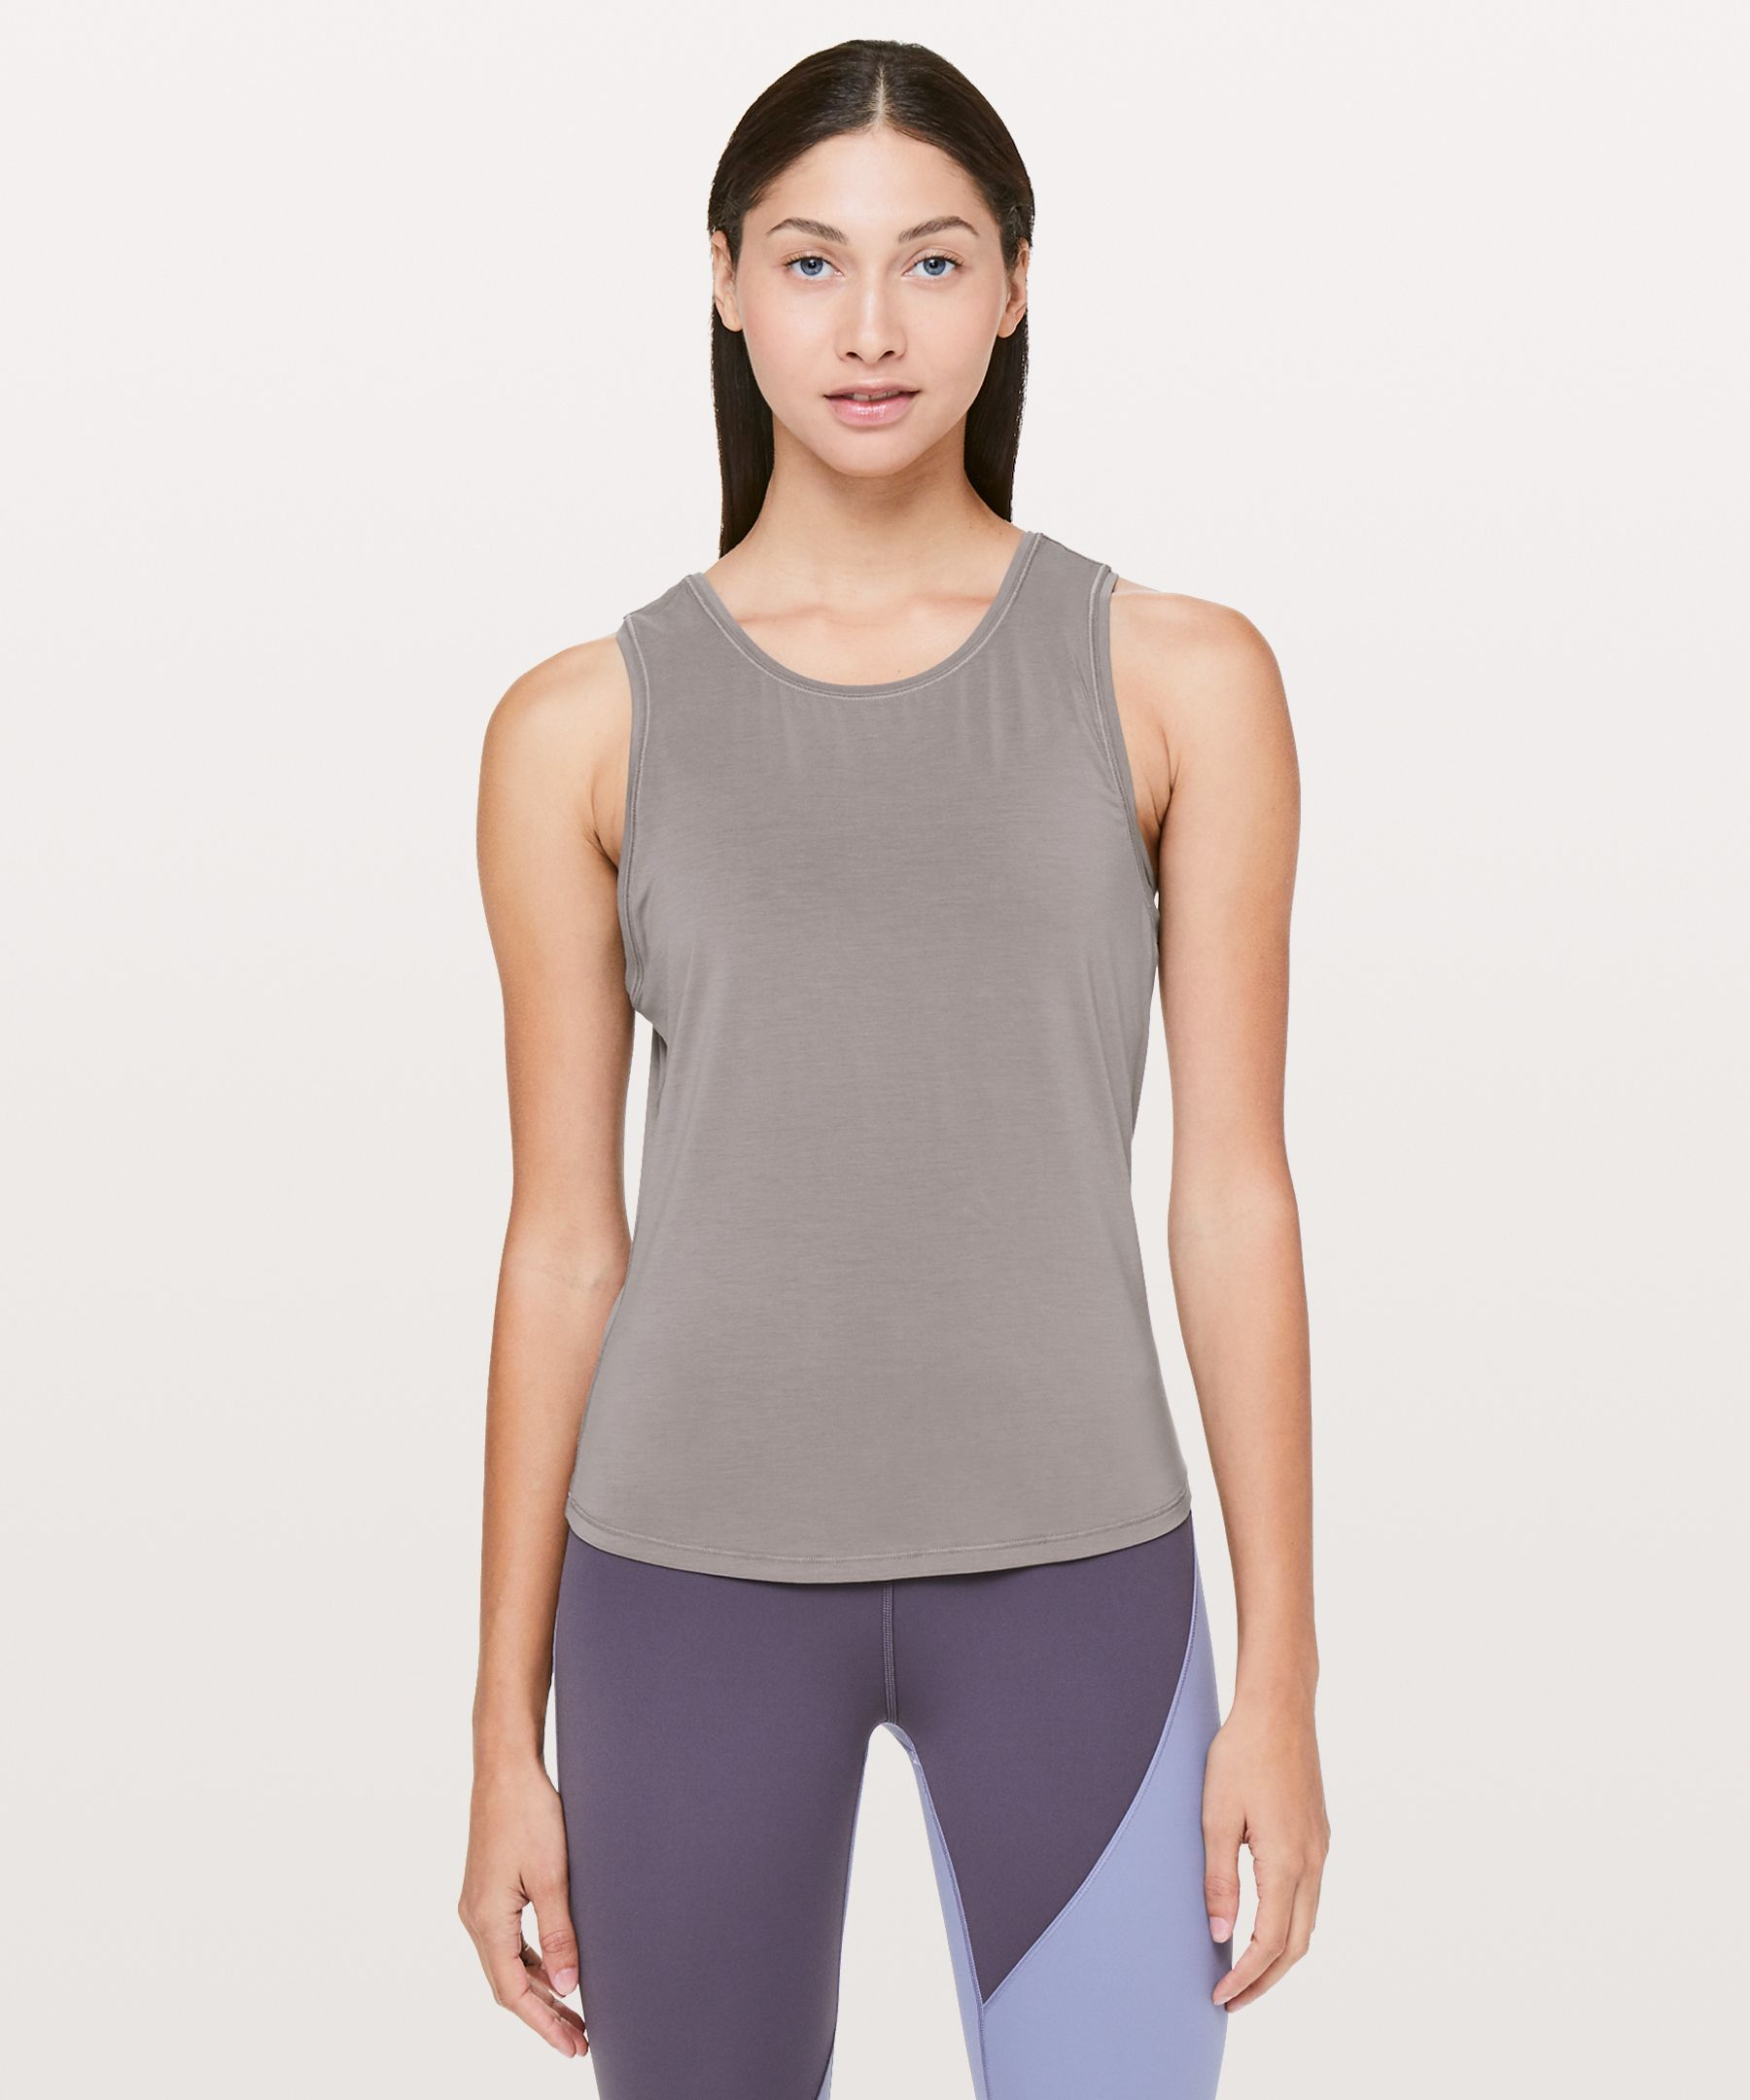 Deep Stretch Tank by Lululemon